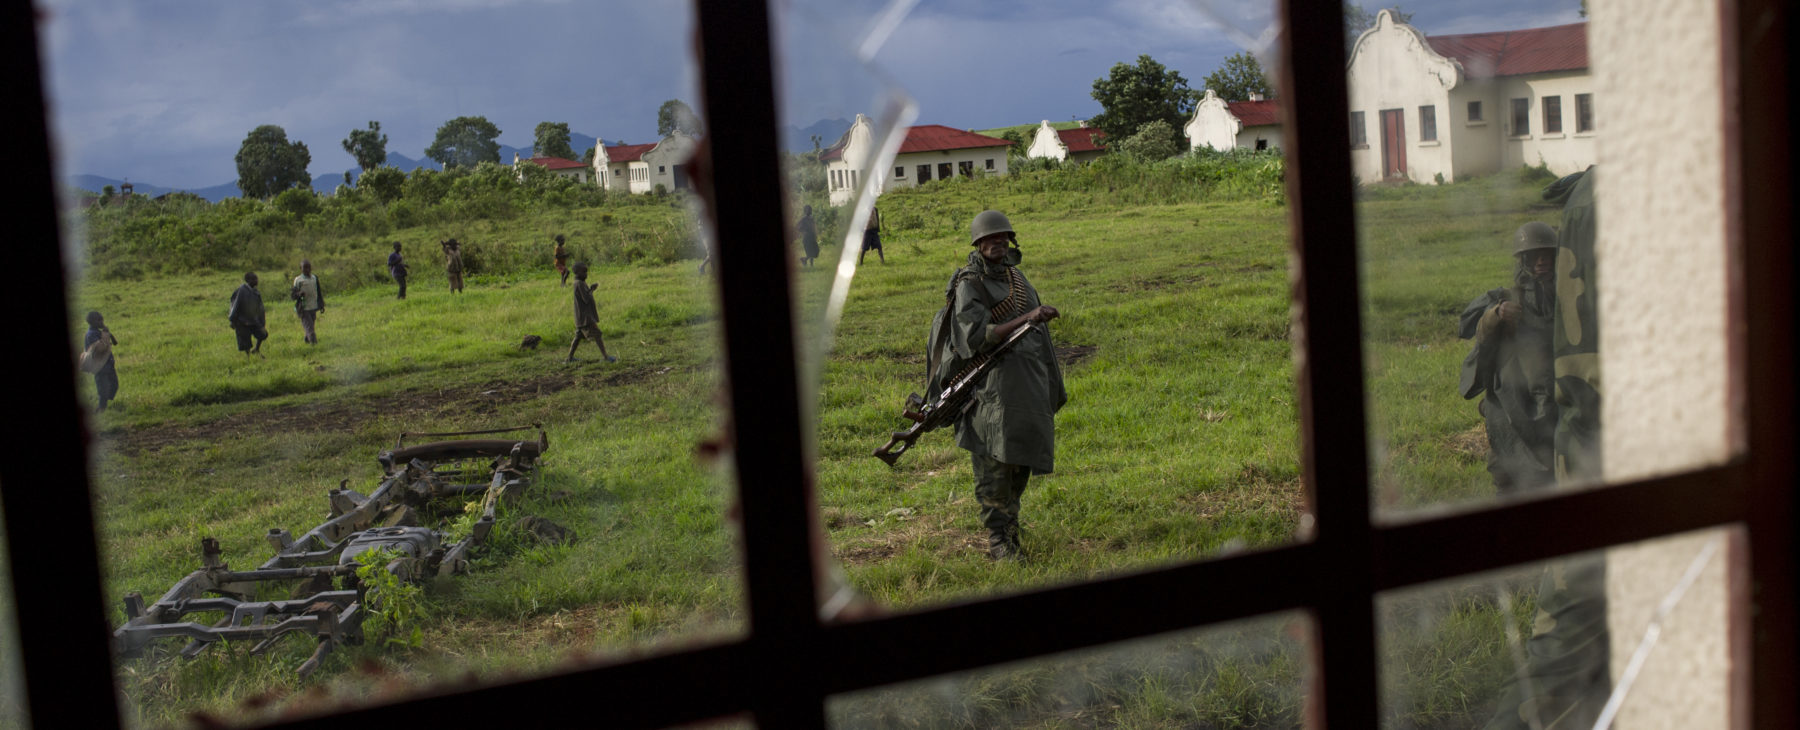 Congolese soldier receives 15 years sentence for a double rape